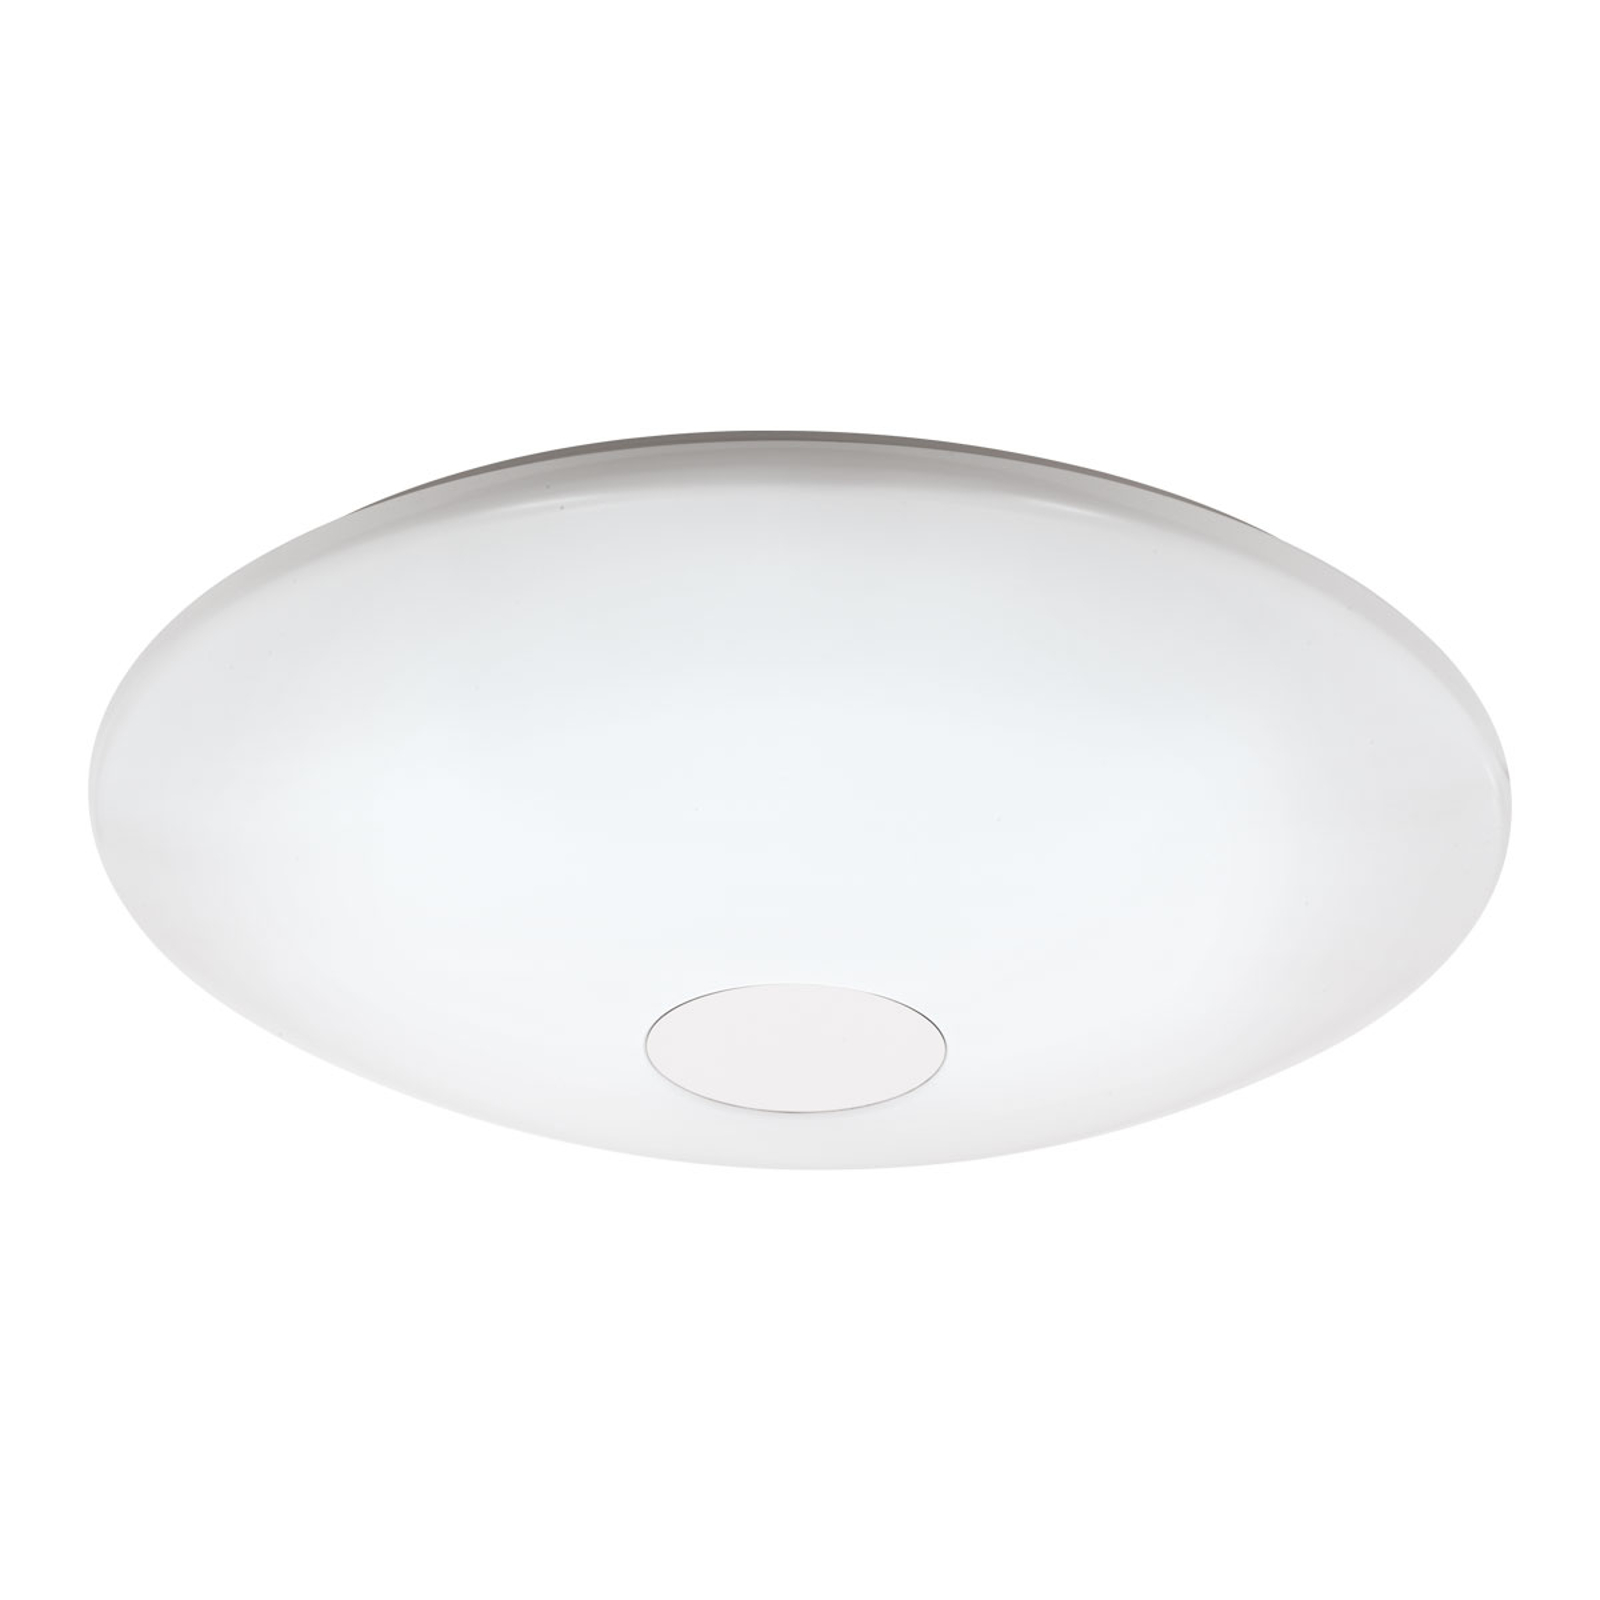 EGLO connect Totari-C lampa sufitowa LED, biała